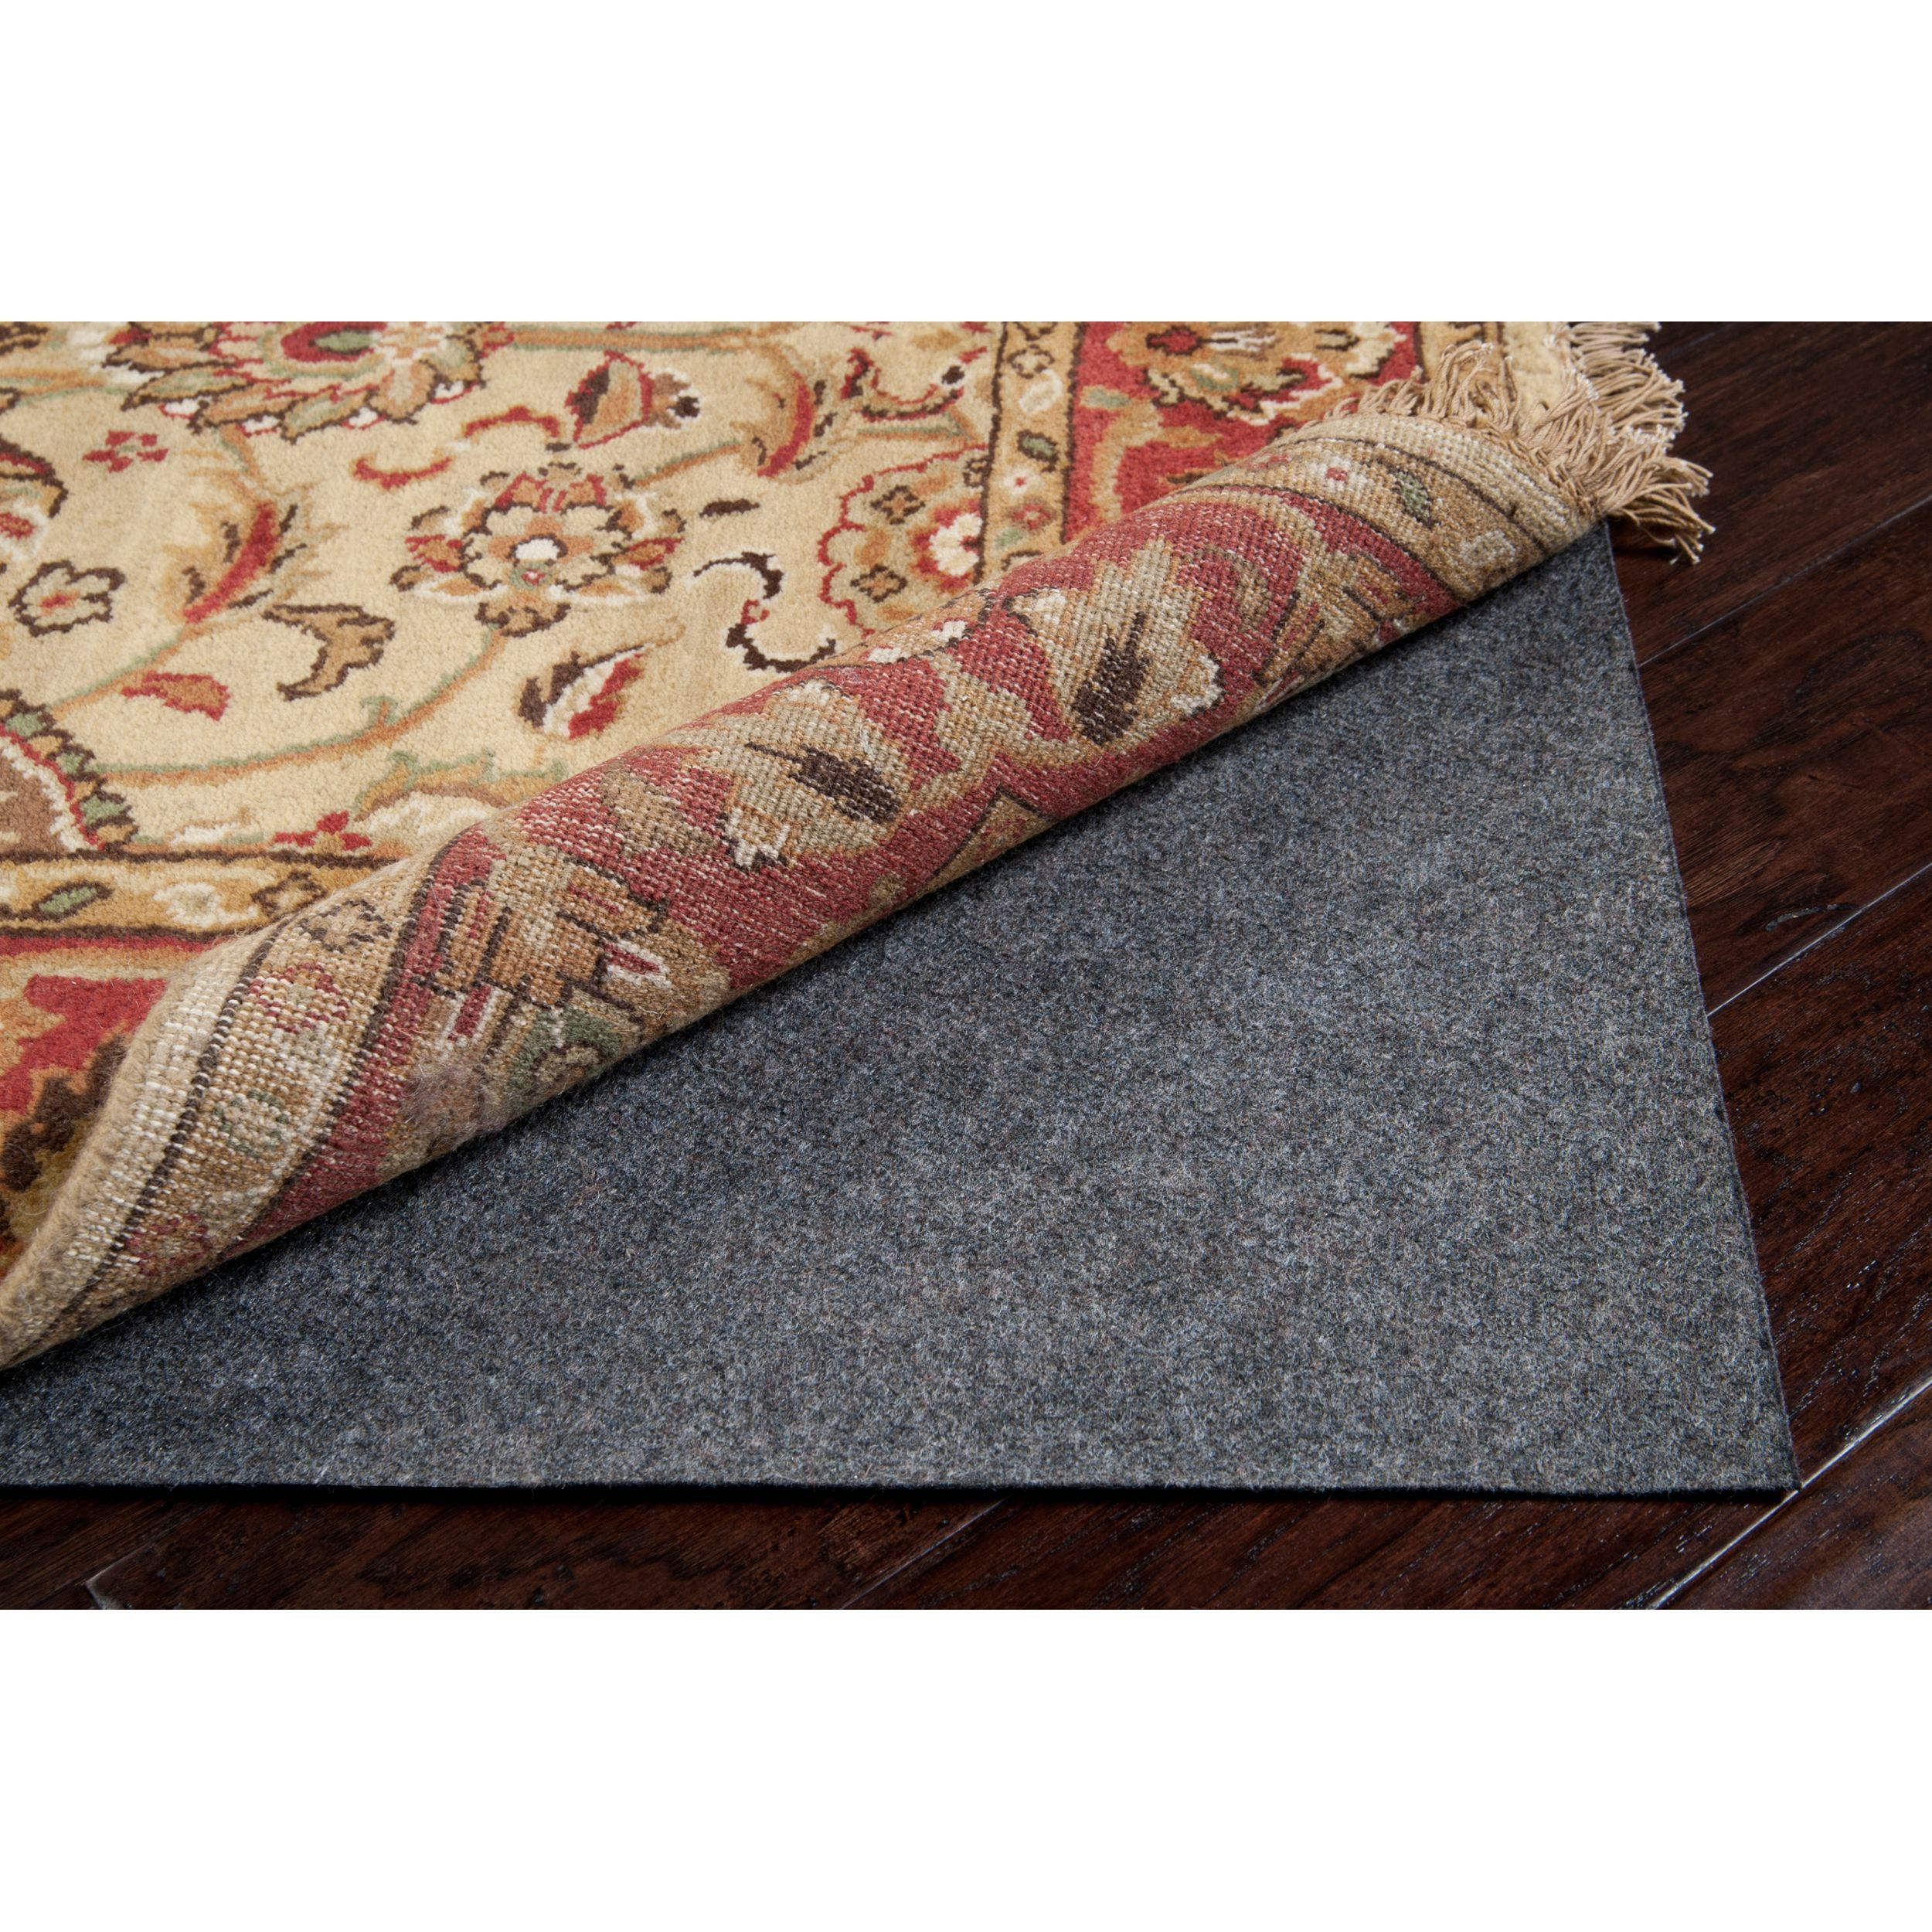 Xavier Felt Rug Pad Rugs On Carpet Cool Rugs Rugs